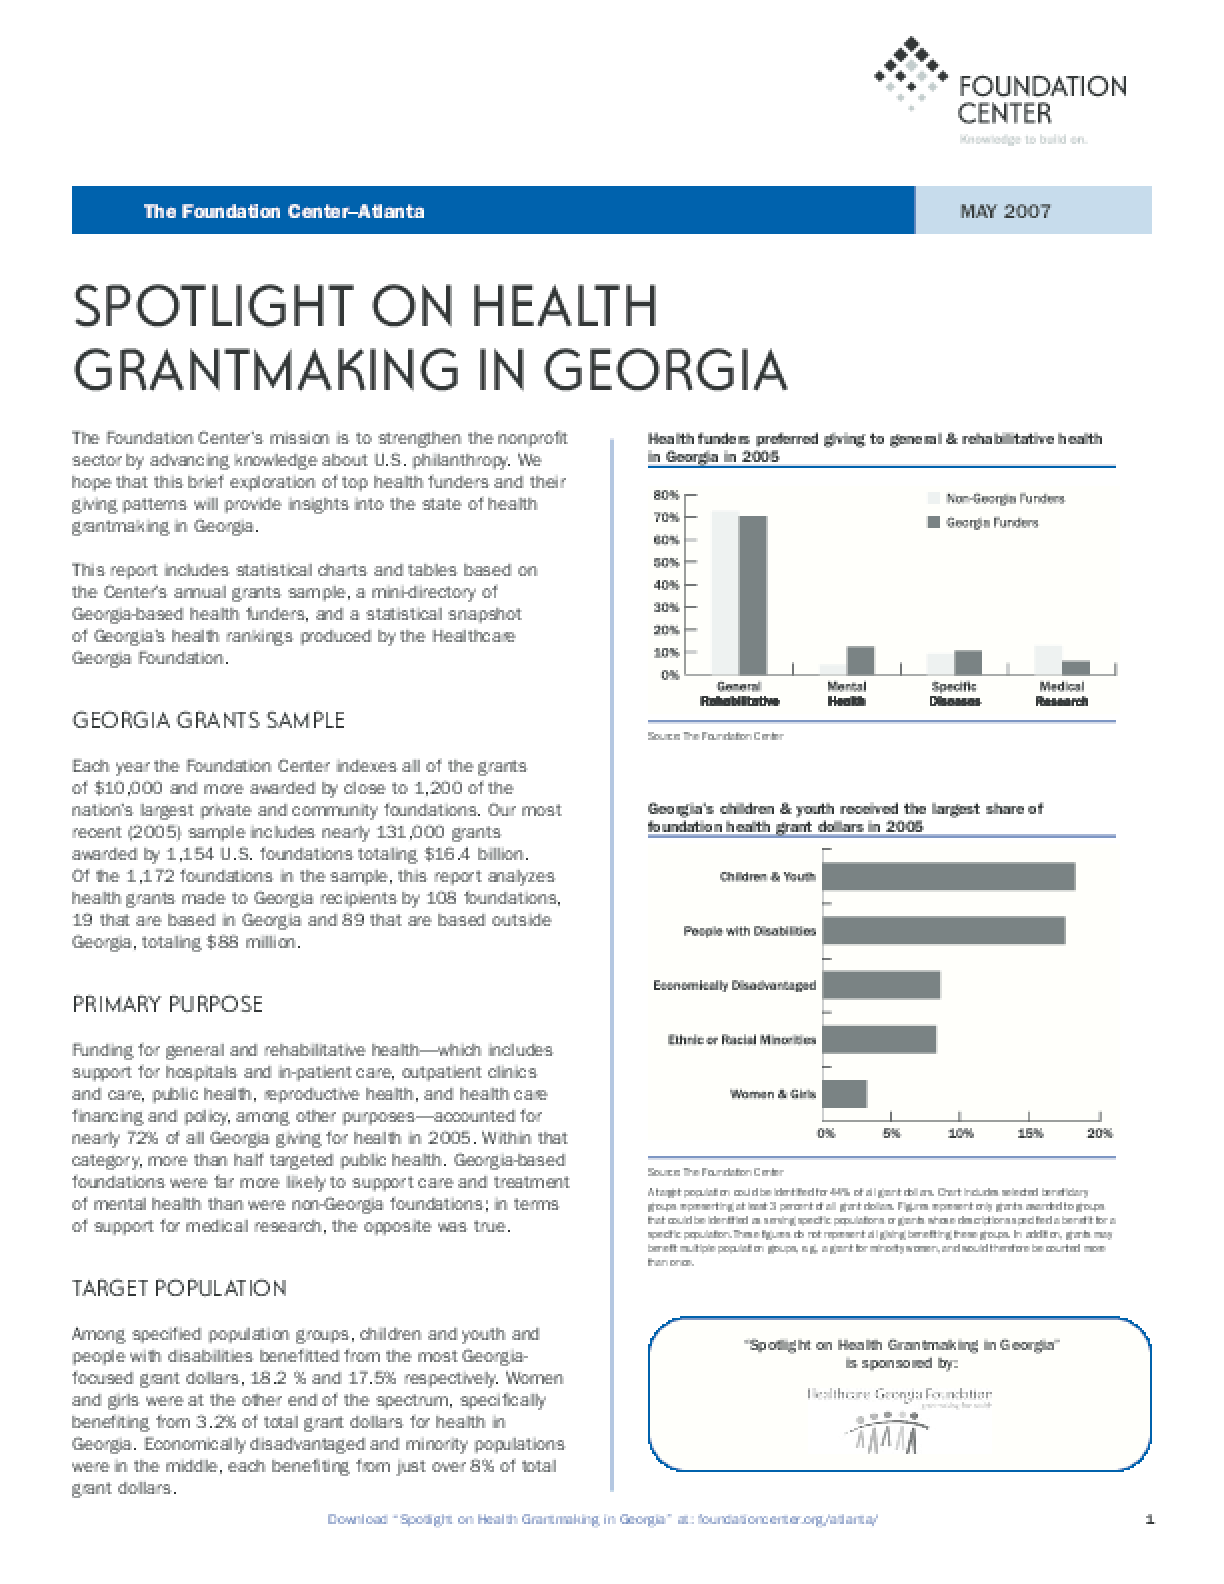 Spotlight on Health Grantmaking in Georgia 2007